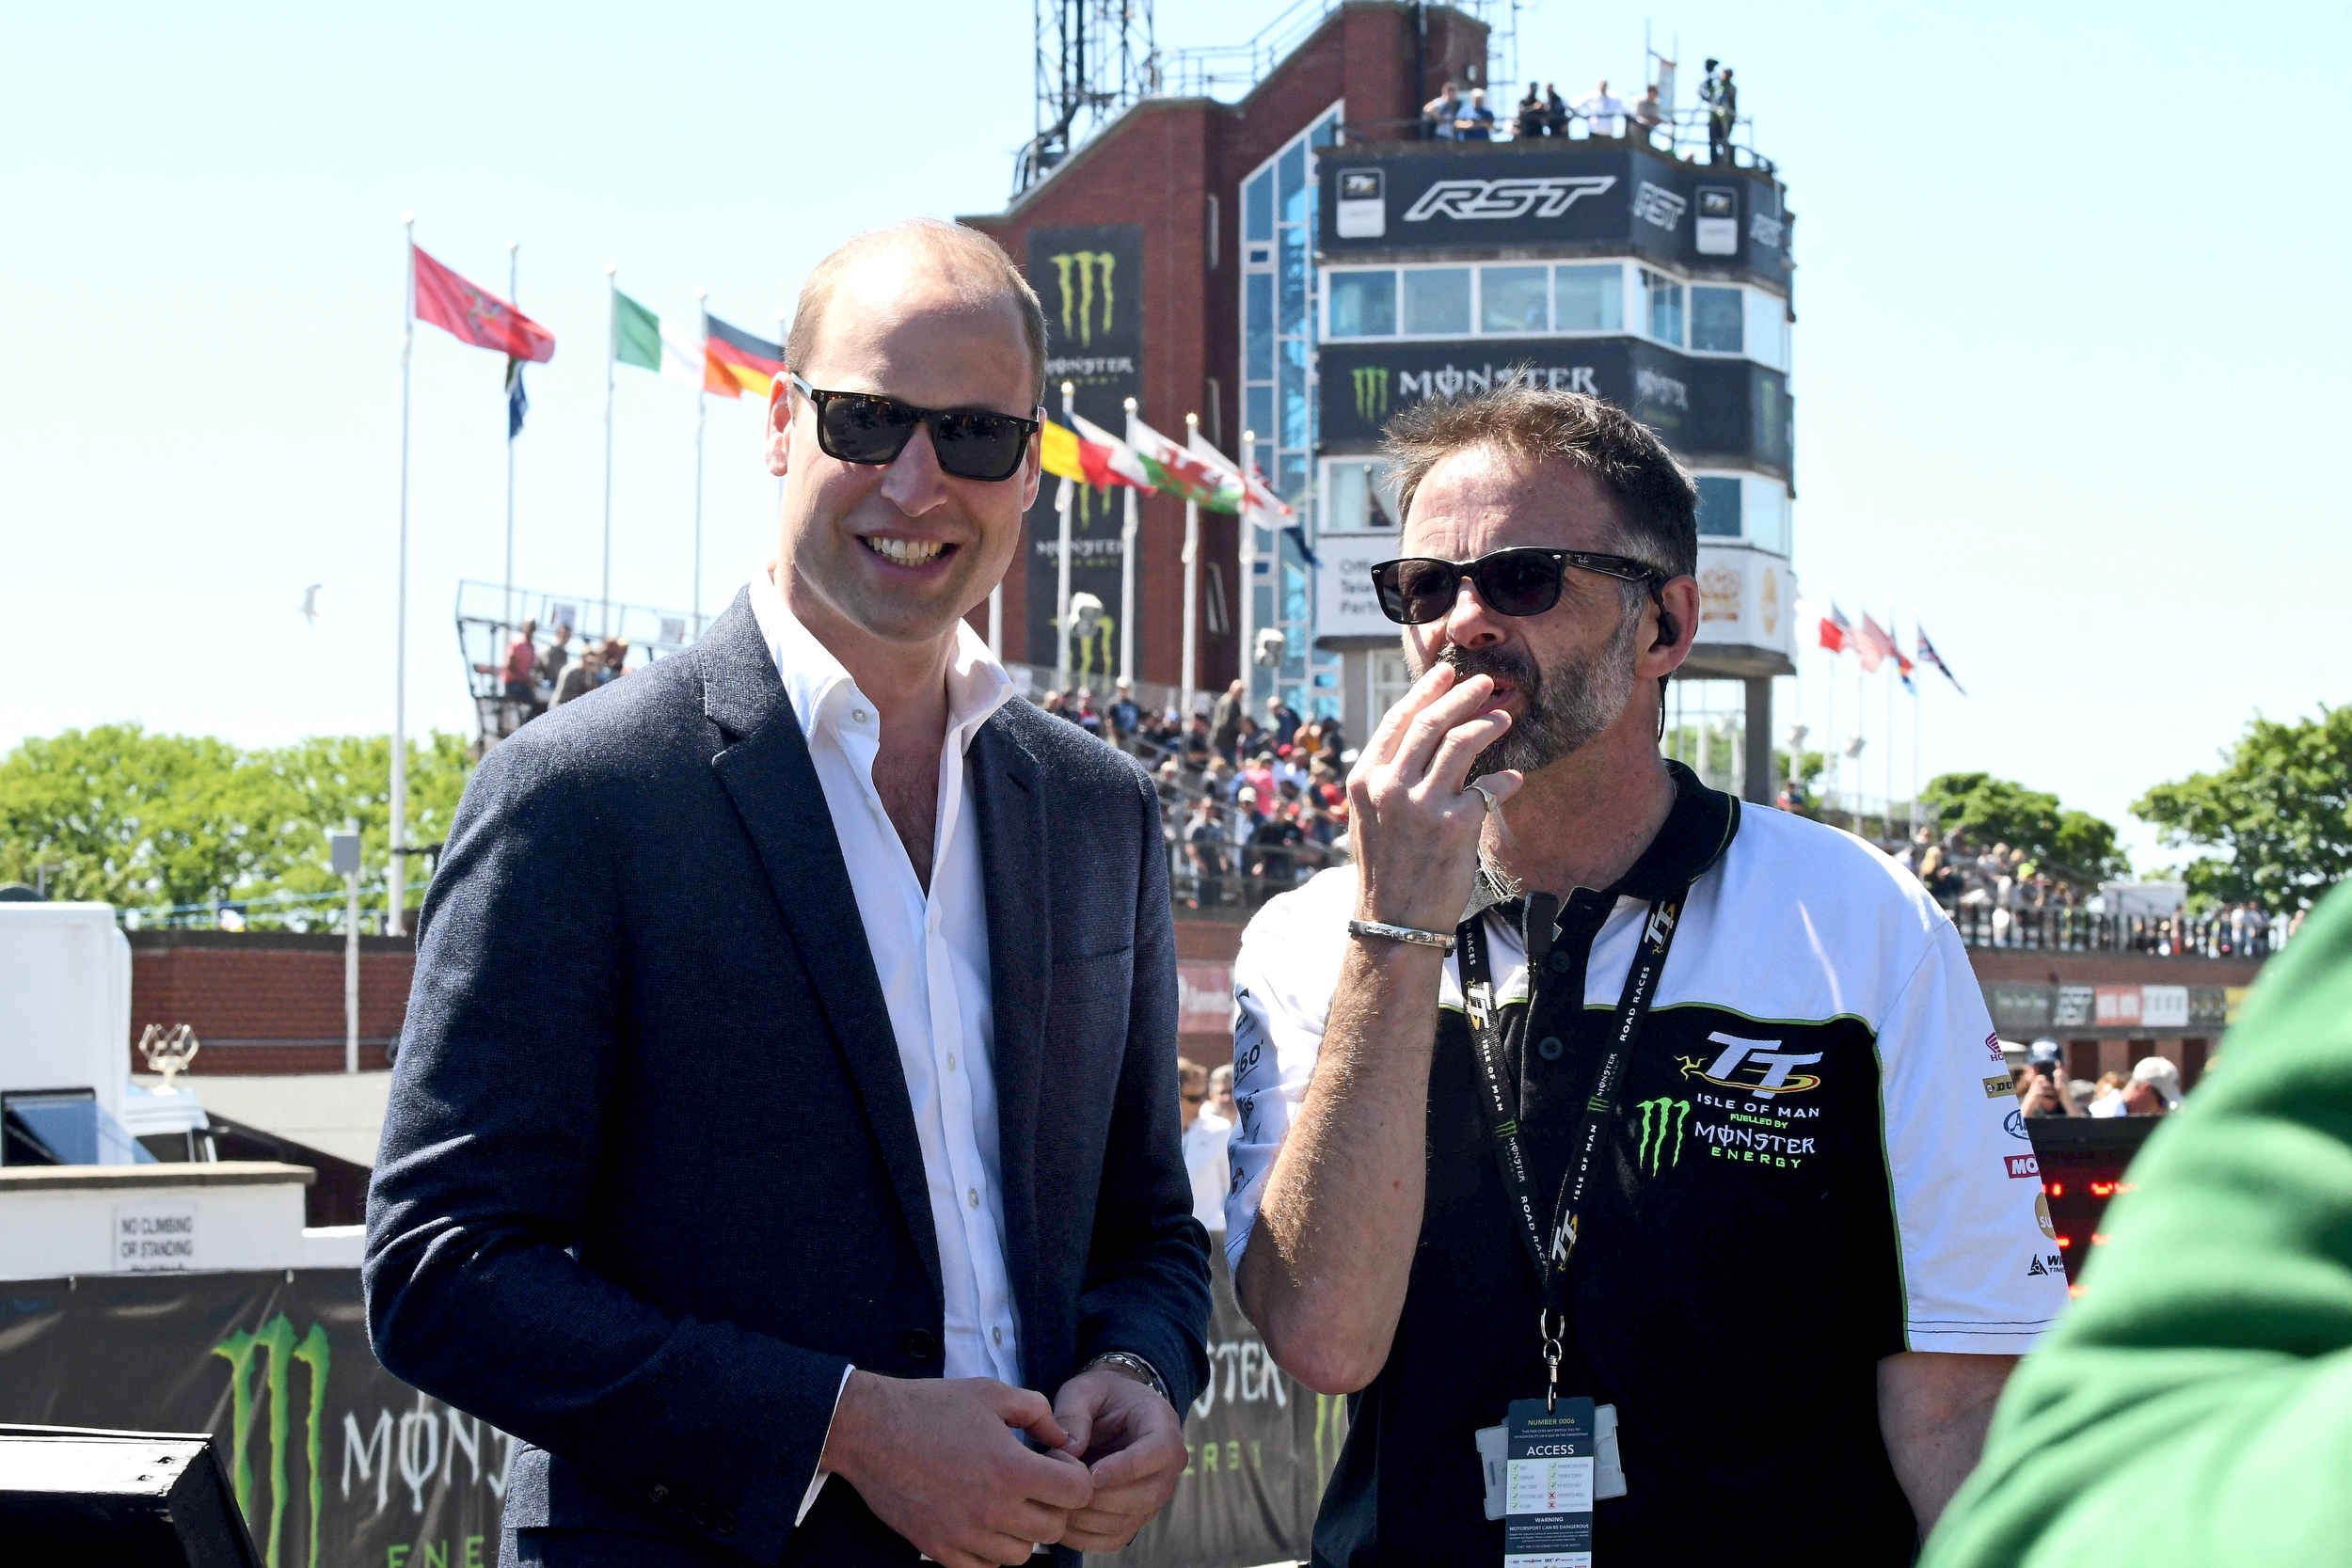 His Royal Highness the Duke of Cambridge visits the grandstand during the Isle of Man TT races